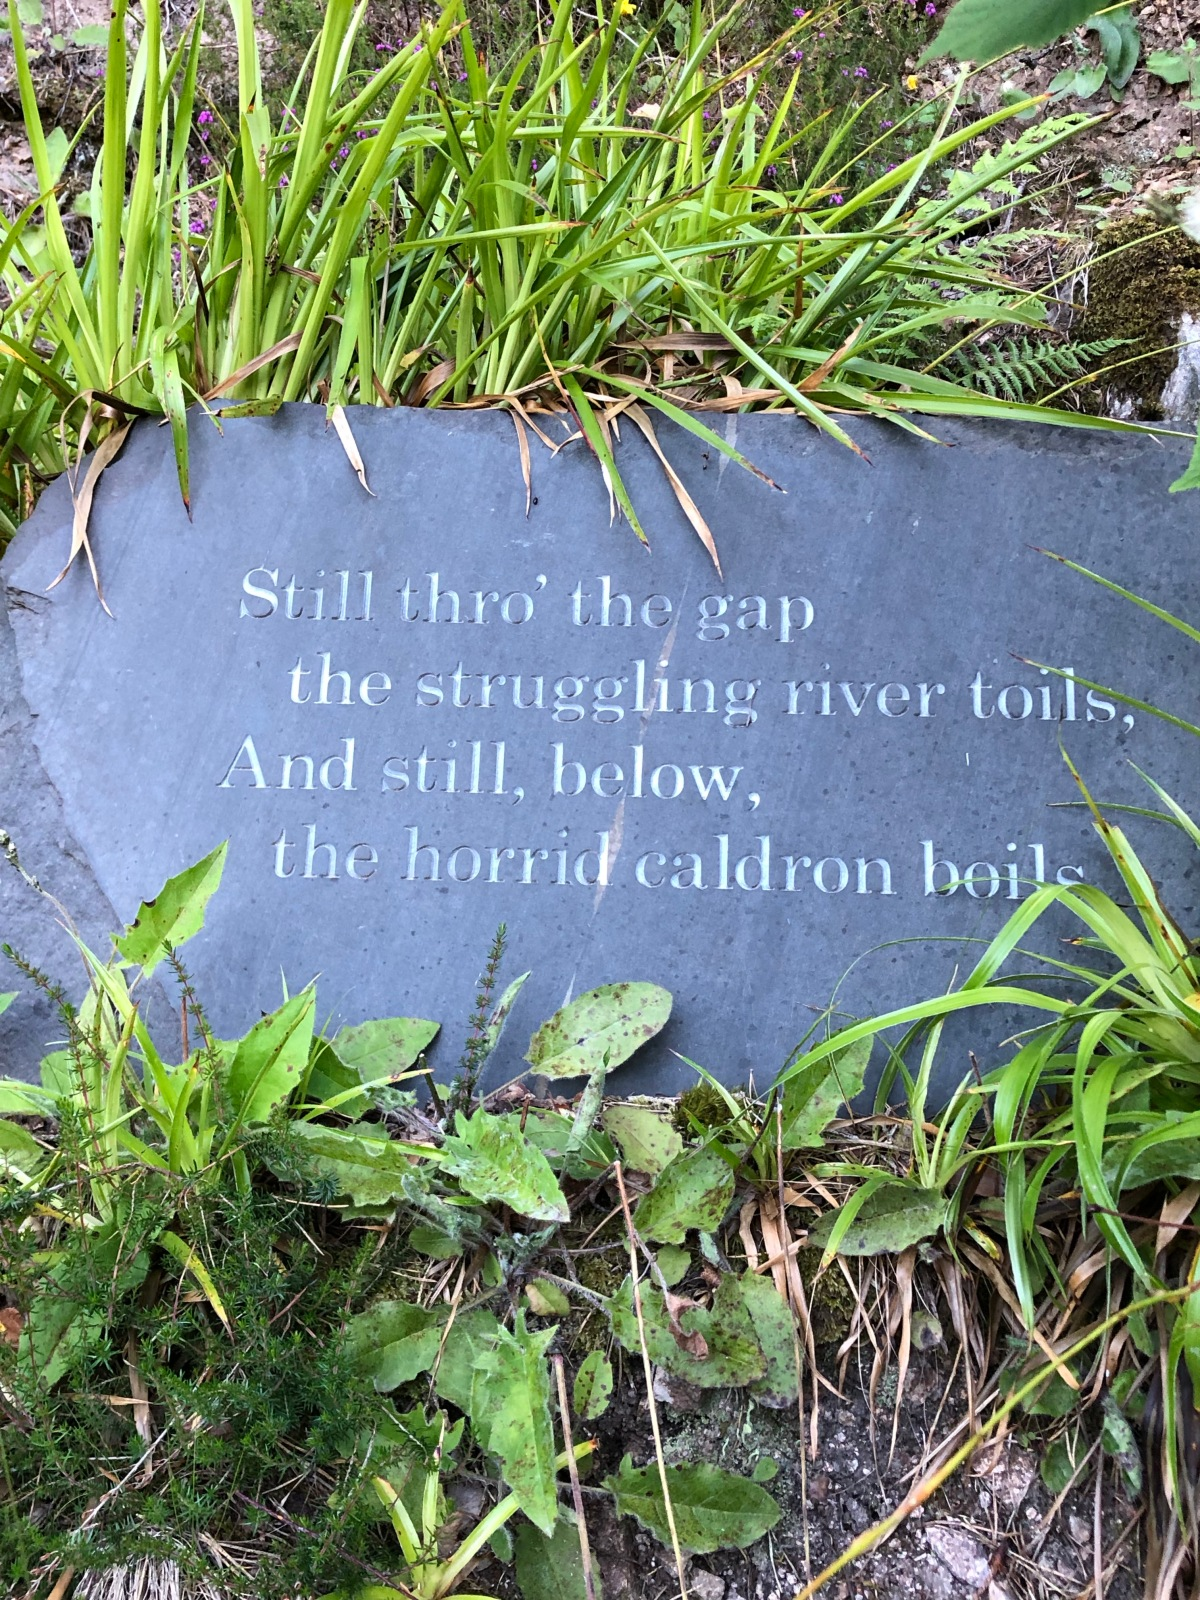 Falls of Foyers, Words of poet Robert Burns